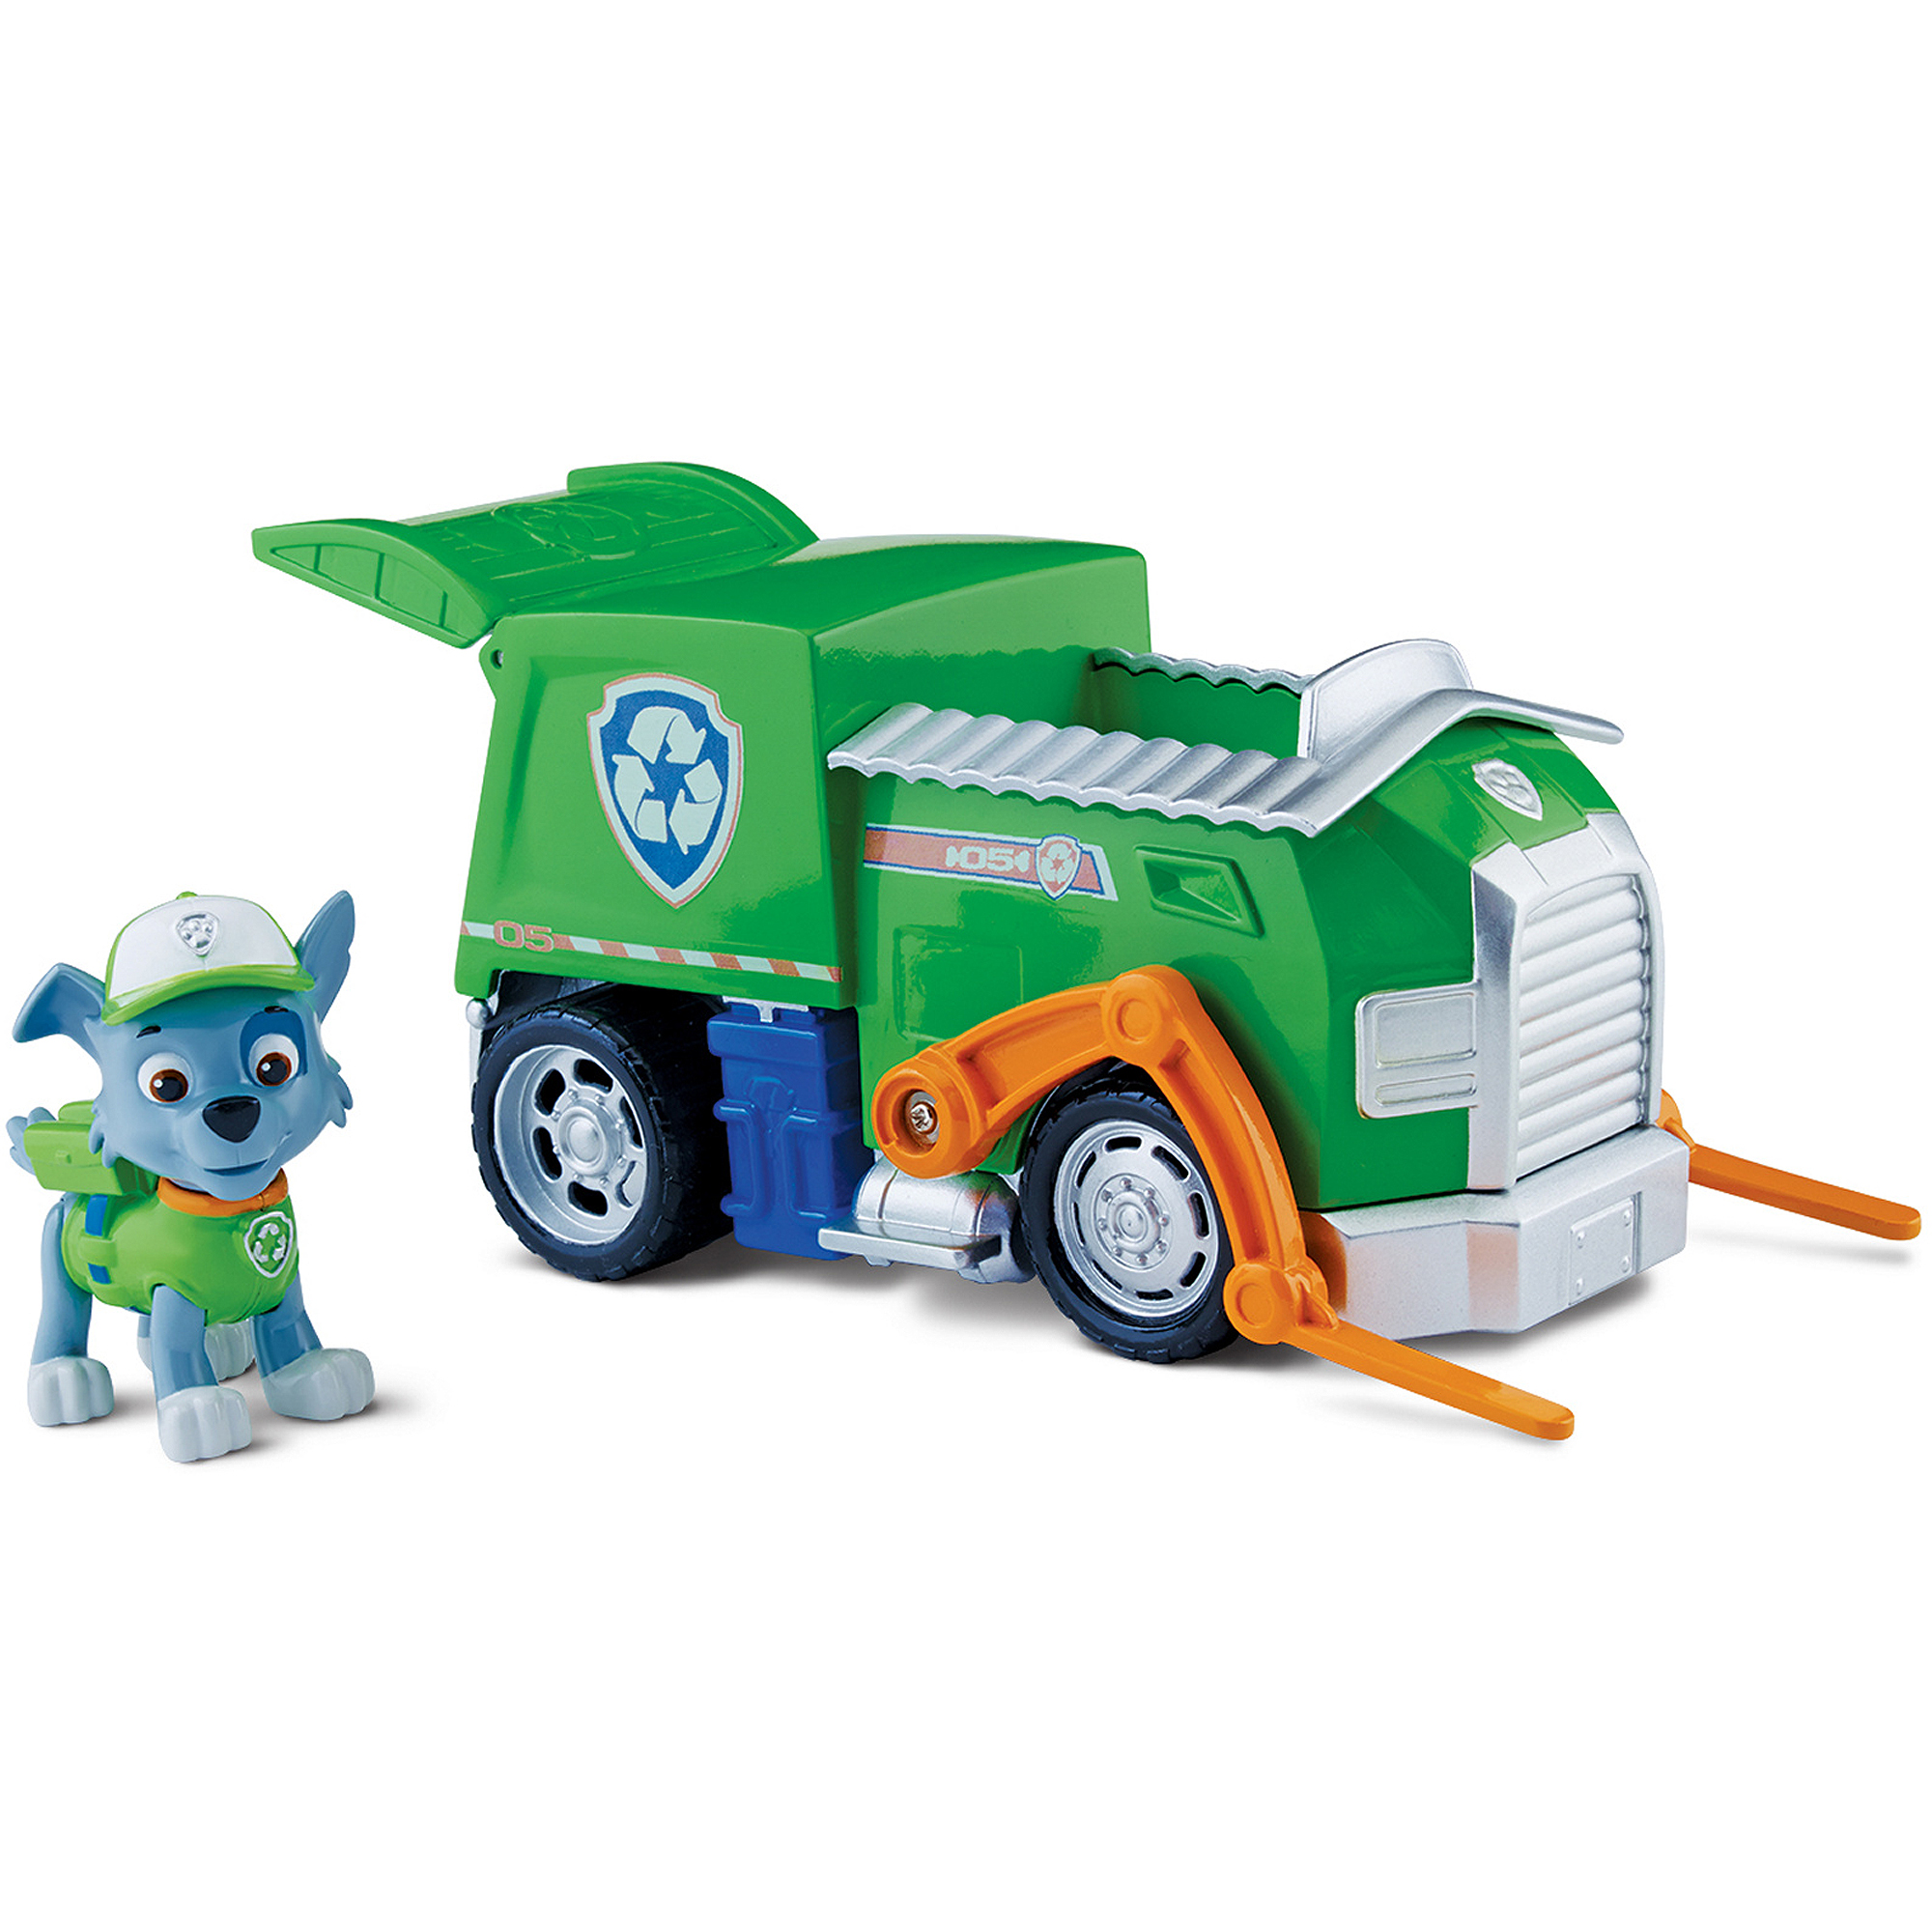 Paw Patrol - Rocky's Recycling Truck, Vehicle and Figure